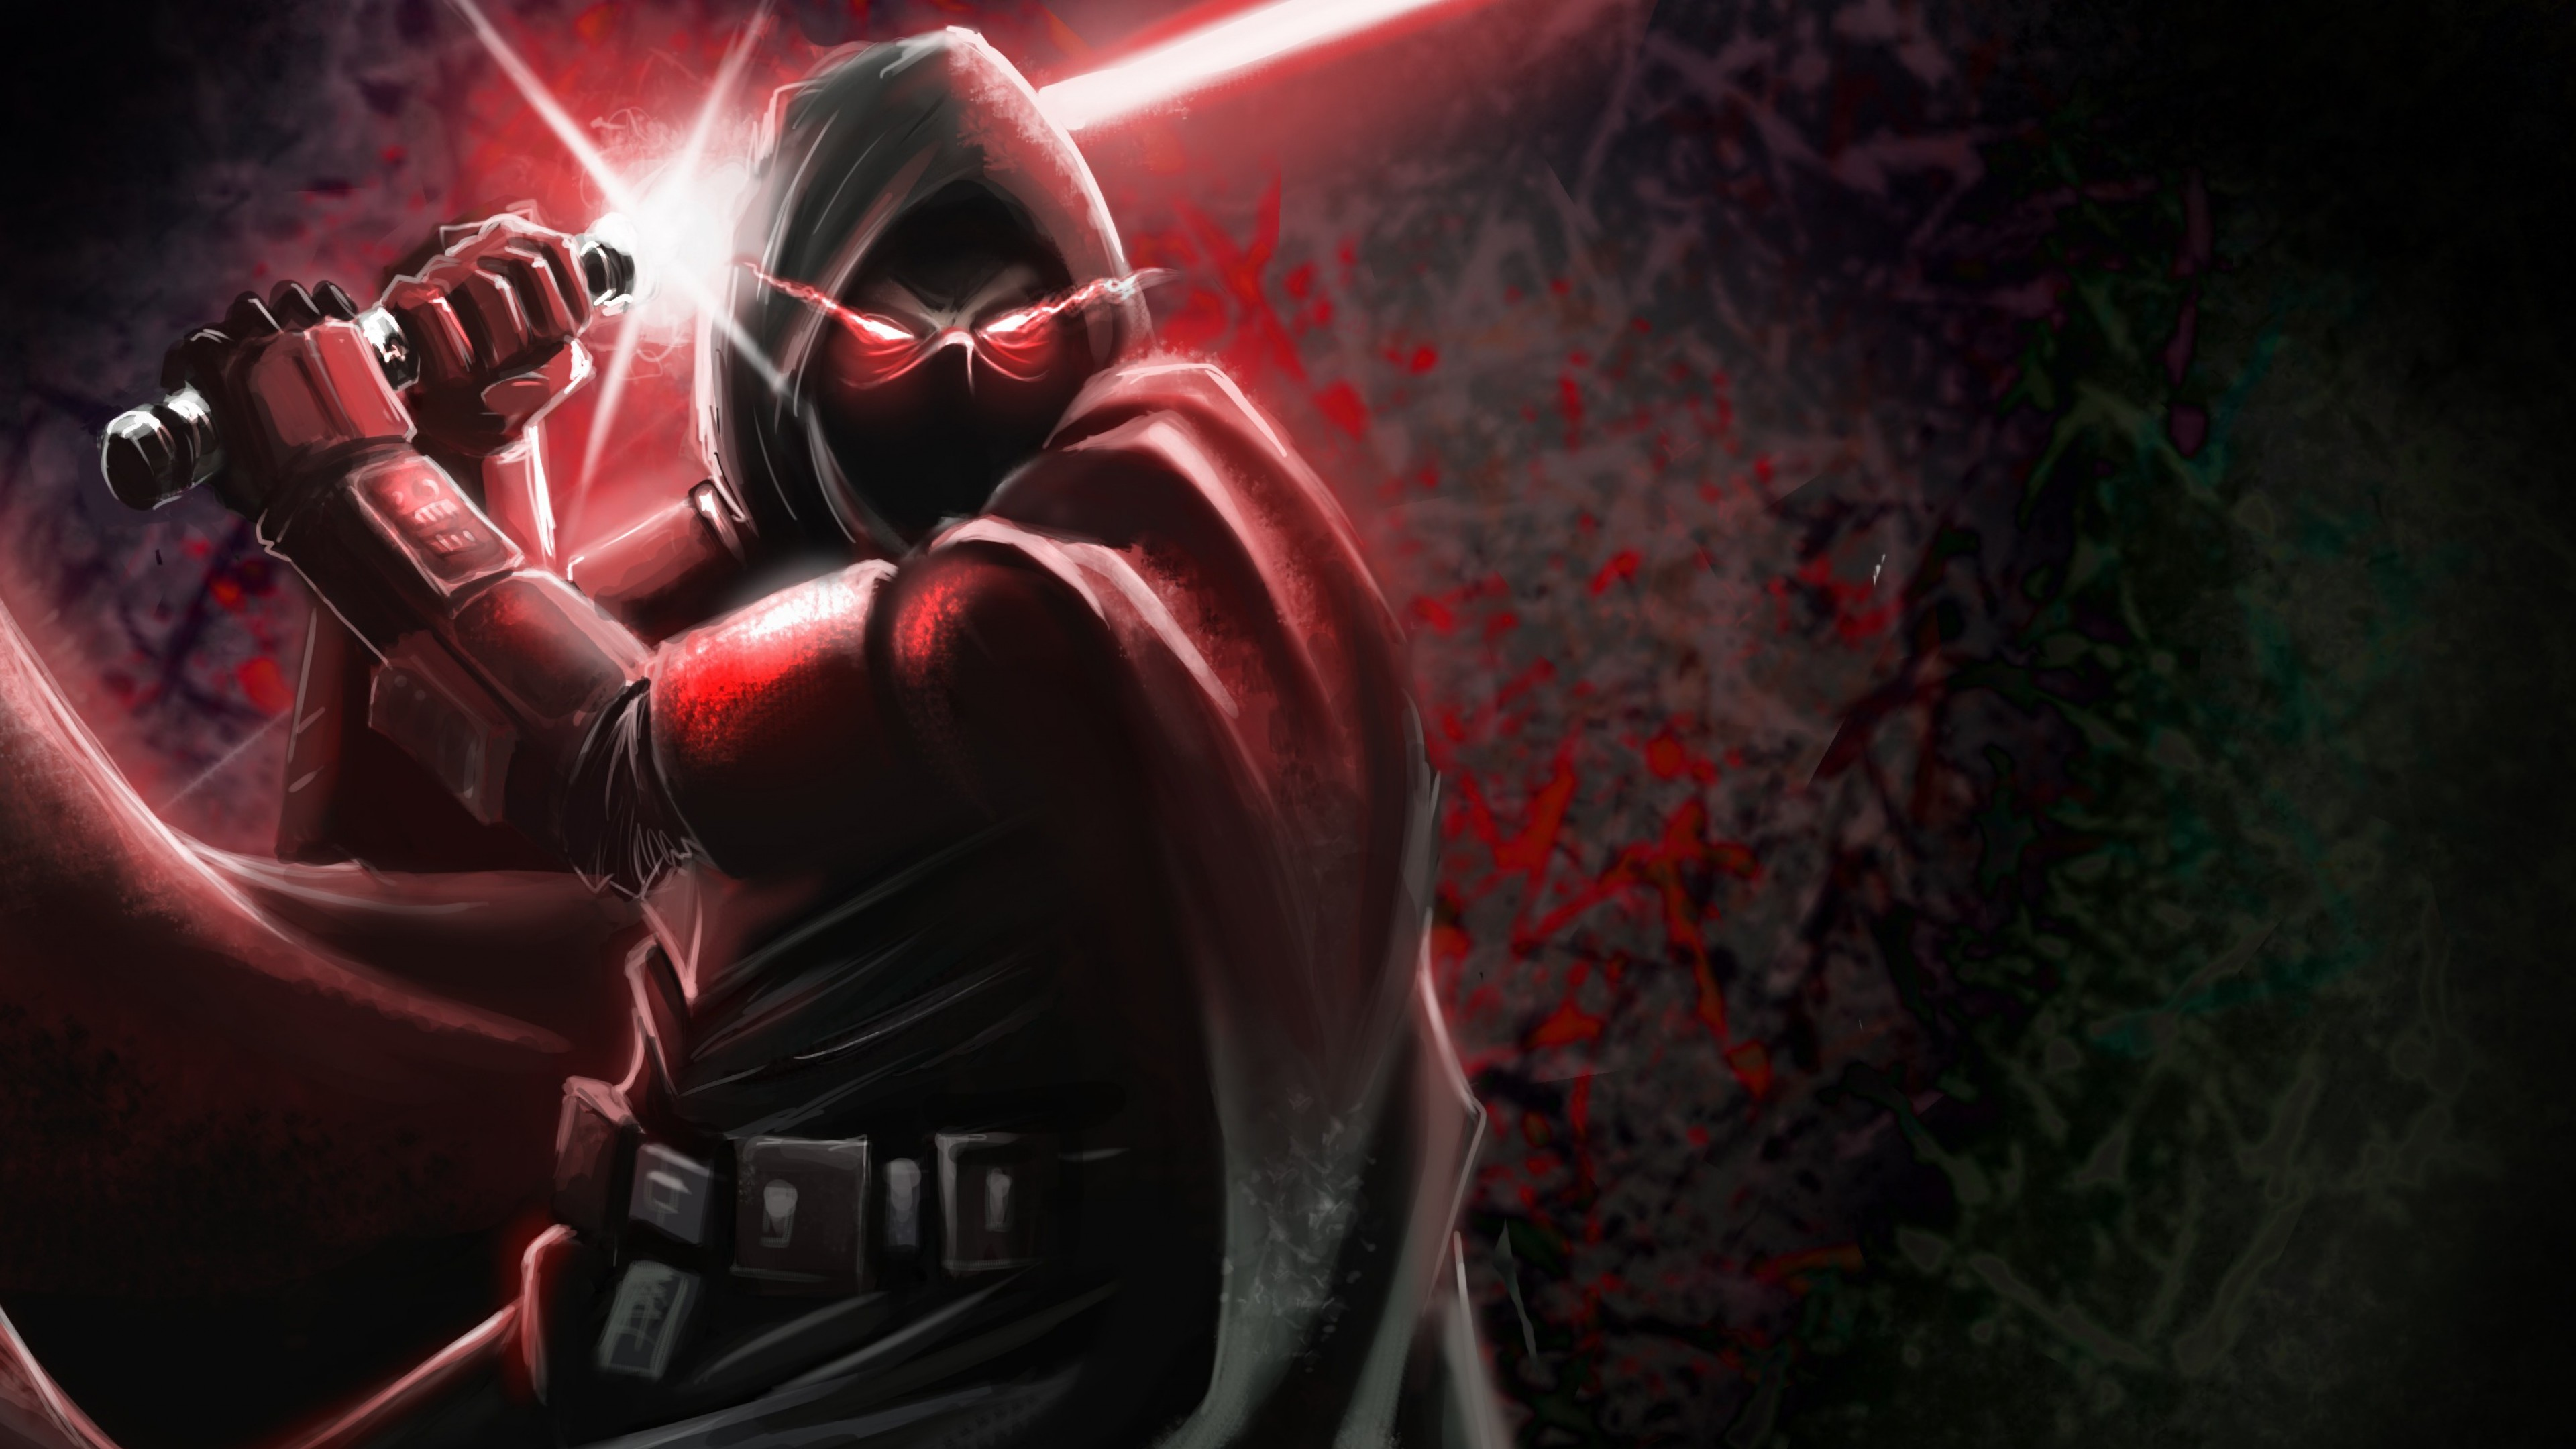 Star Wars Sith Wallpapers Images As Wallpaper HD